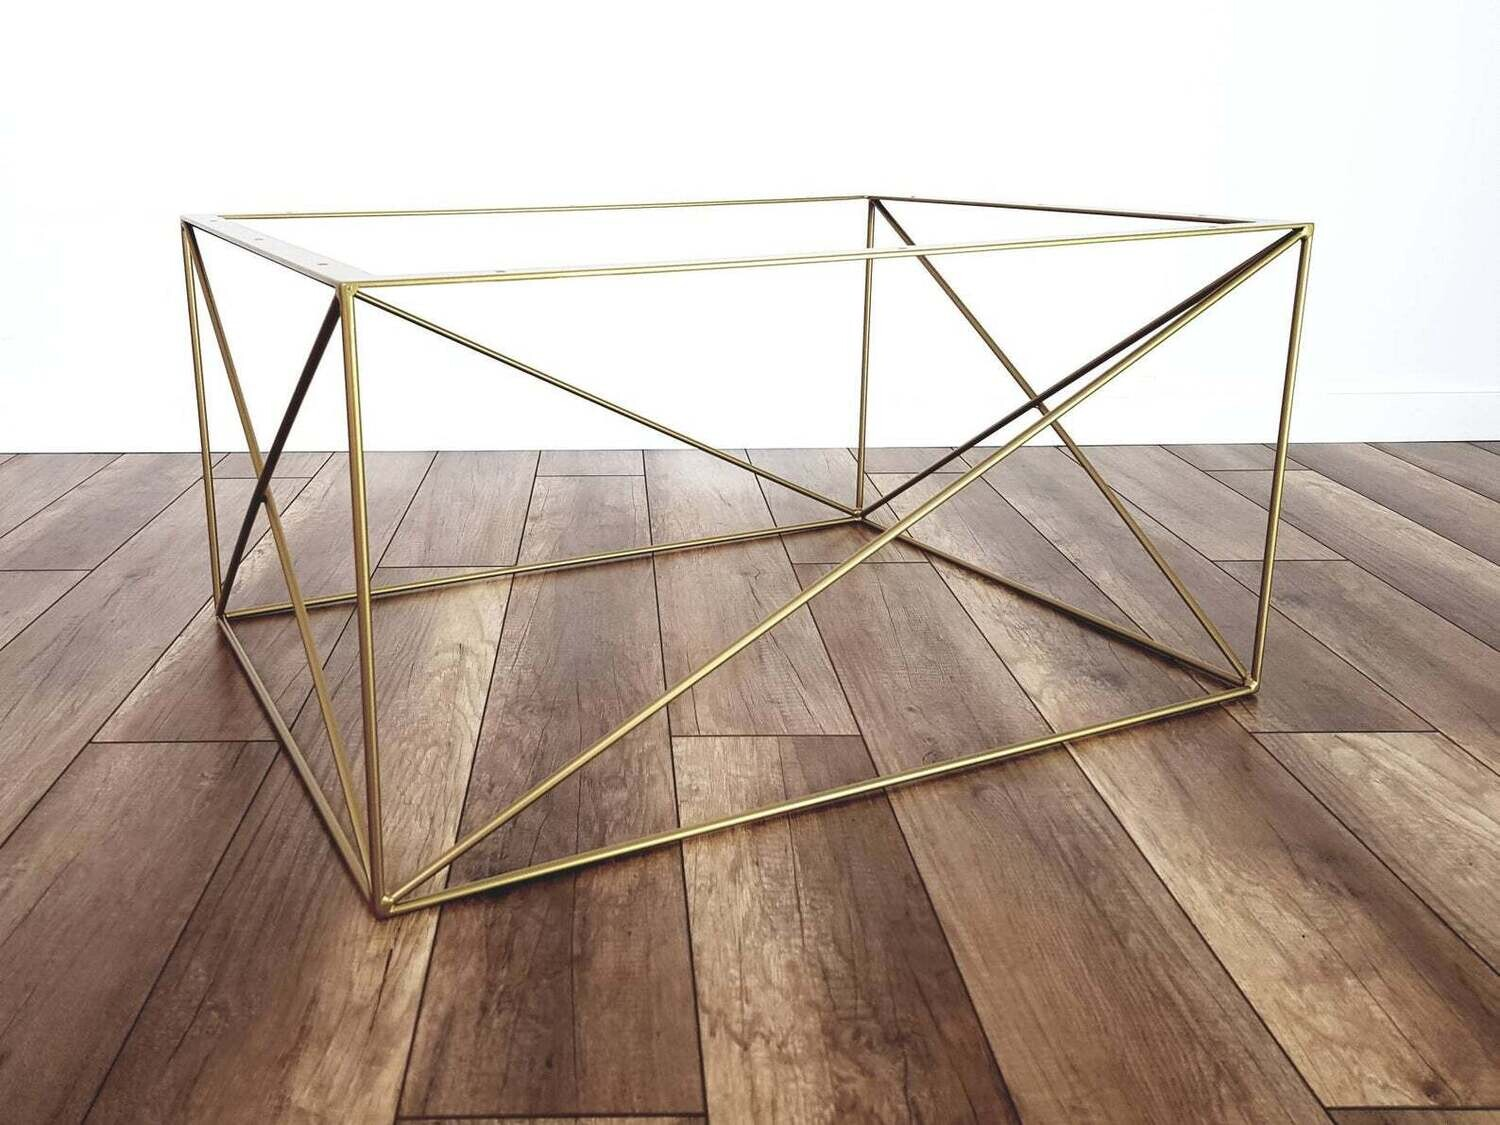 Metal Base for Coffee Table CHARLIE, M size (60x80cm). Modern Coffee Table Legs. Steel Table Frame. [D068]